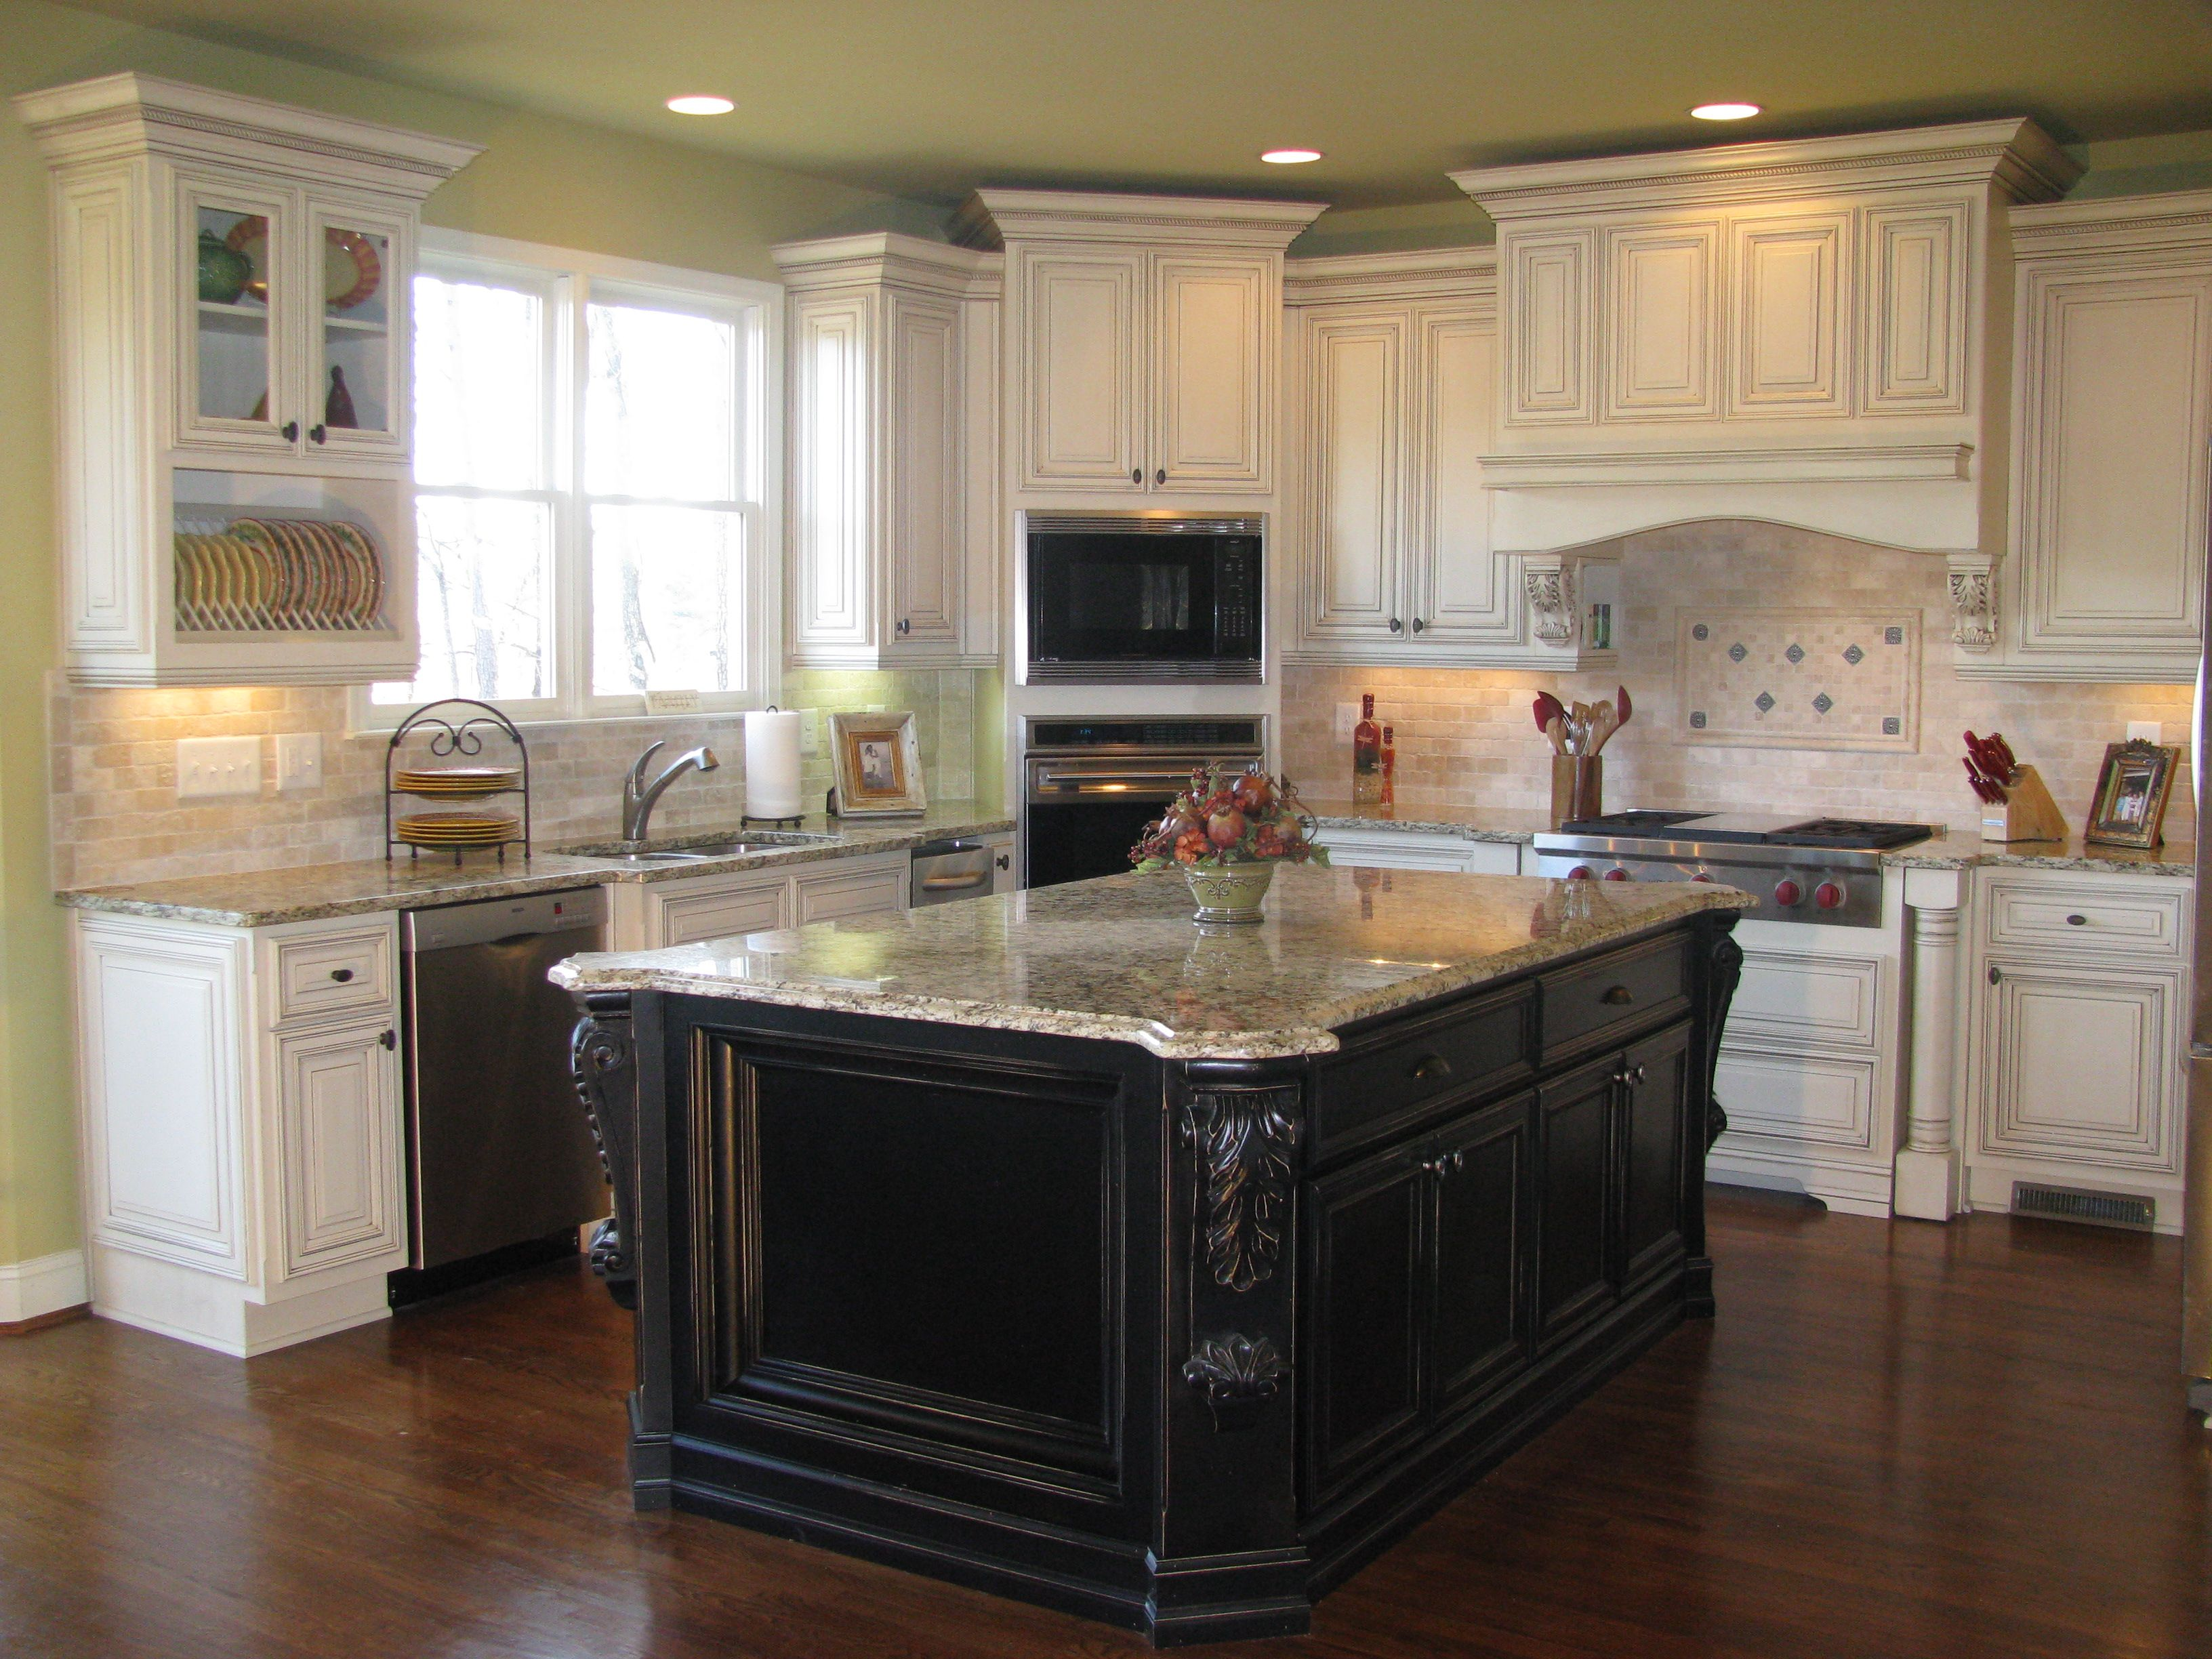 love the white cabinets not so much the dark island new kitchen ideas home kitchens home on kitchen cabinets not white id=89012